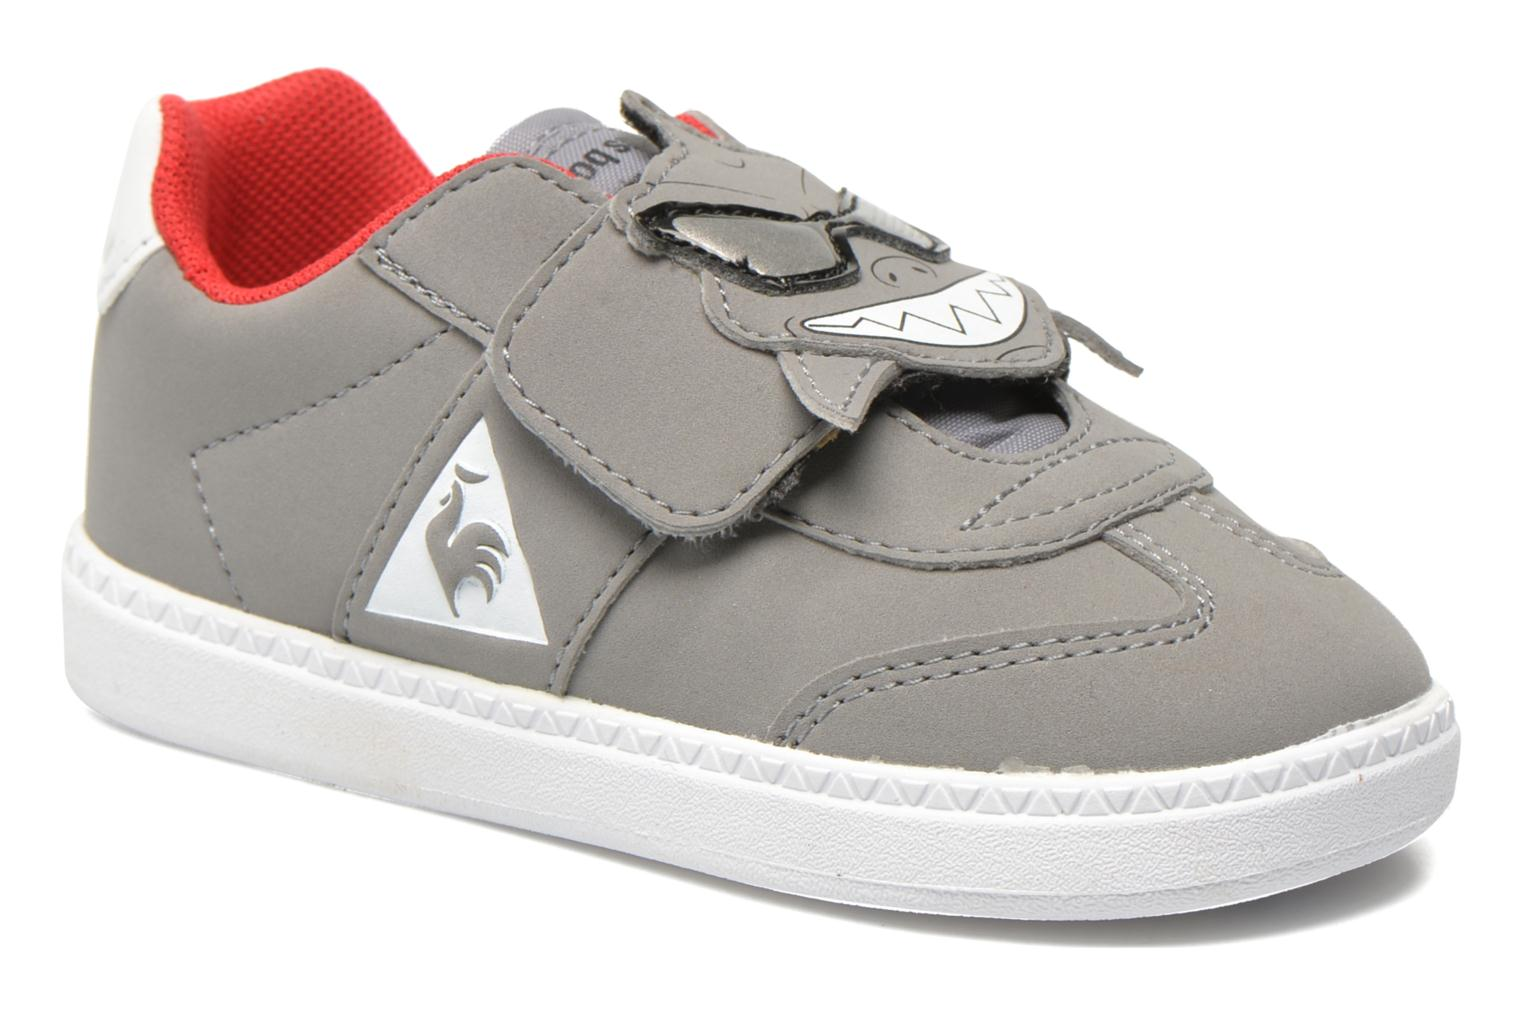 Sneakers Tacleone INF Shark boy by Le Coq Sportif